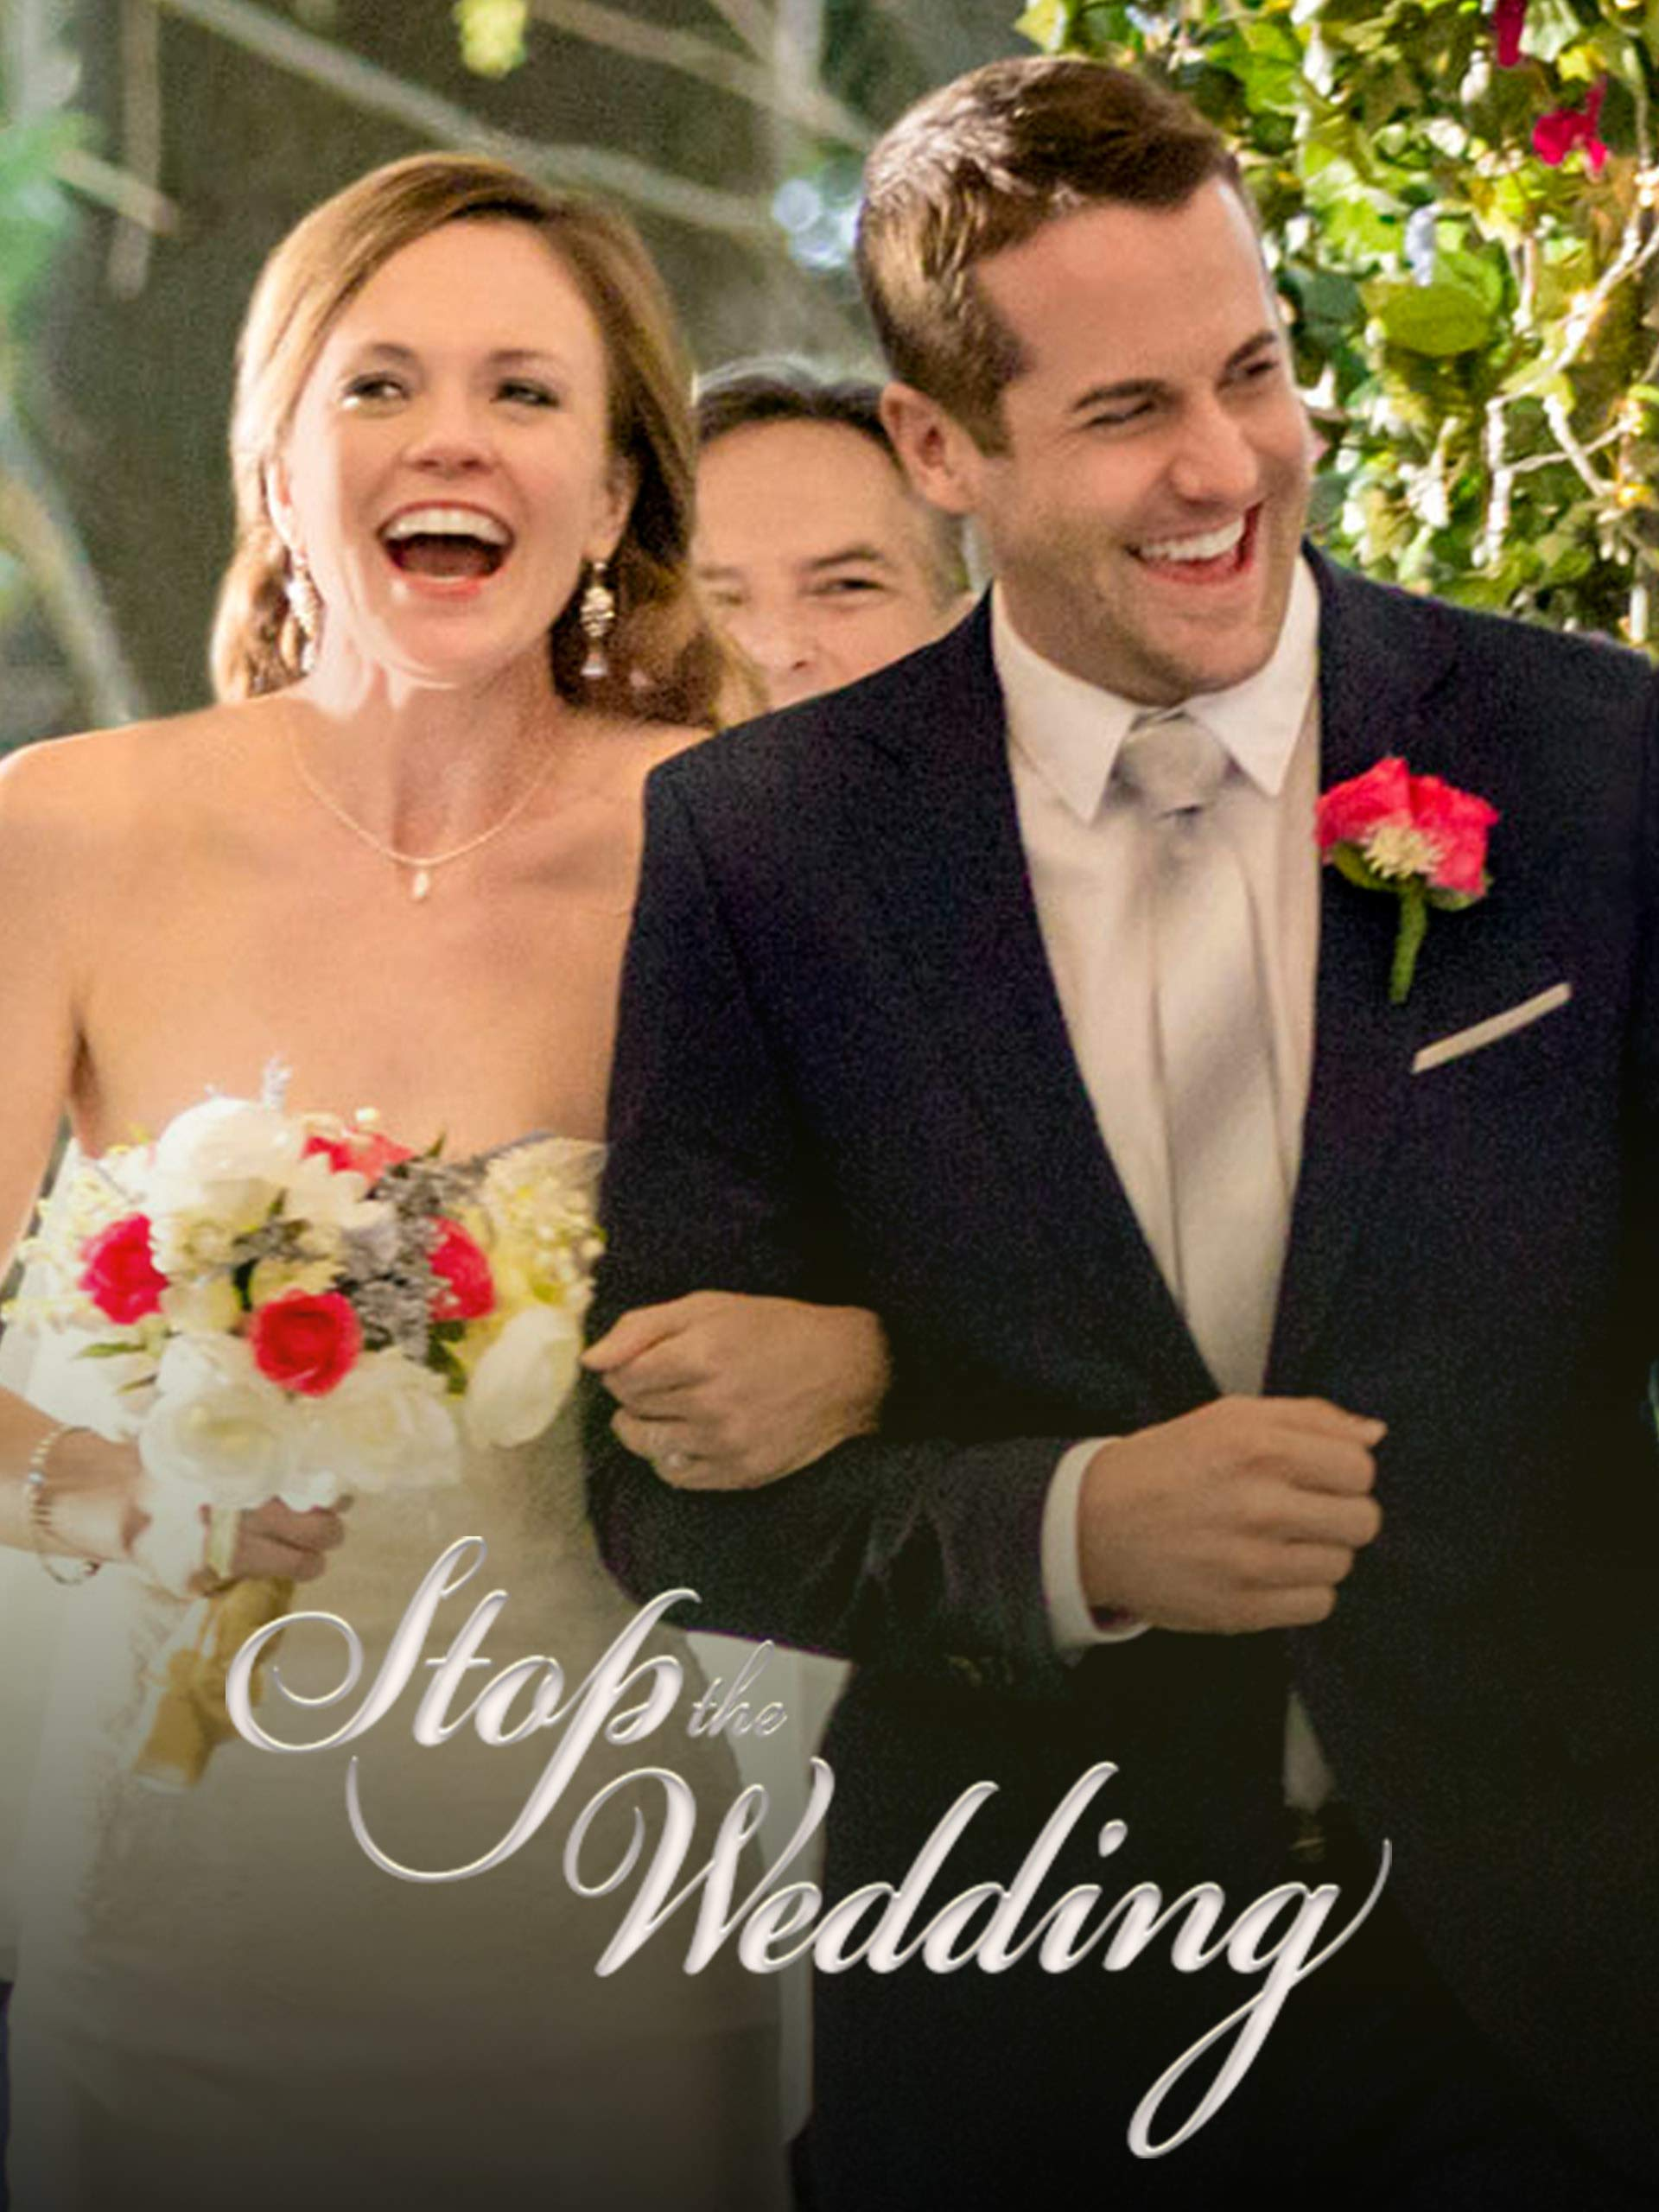 Watch Stop the Wedding  Prime Video